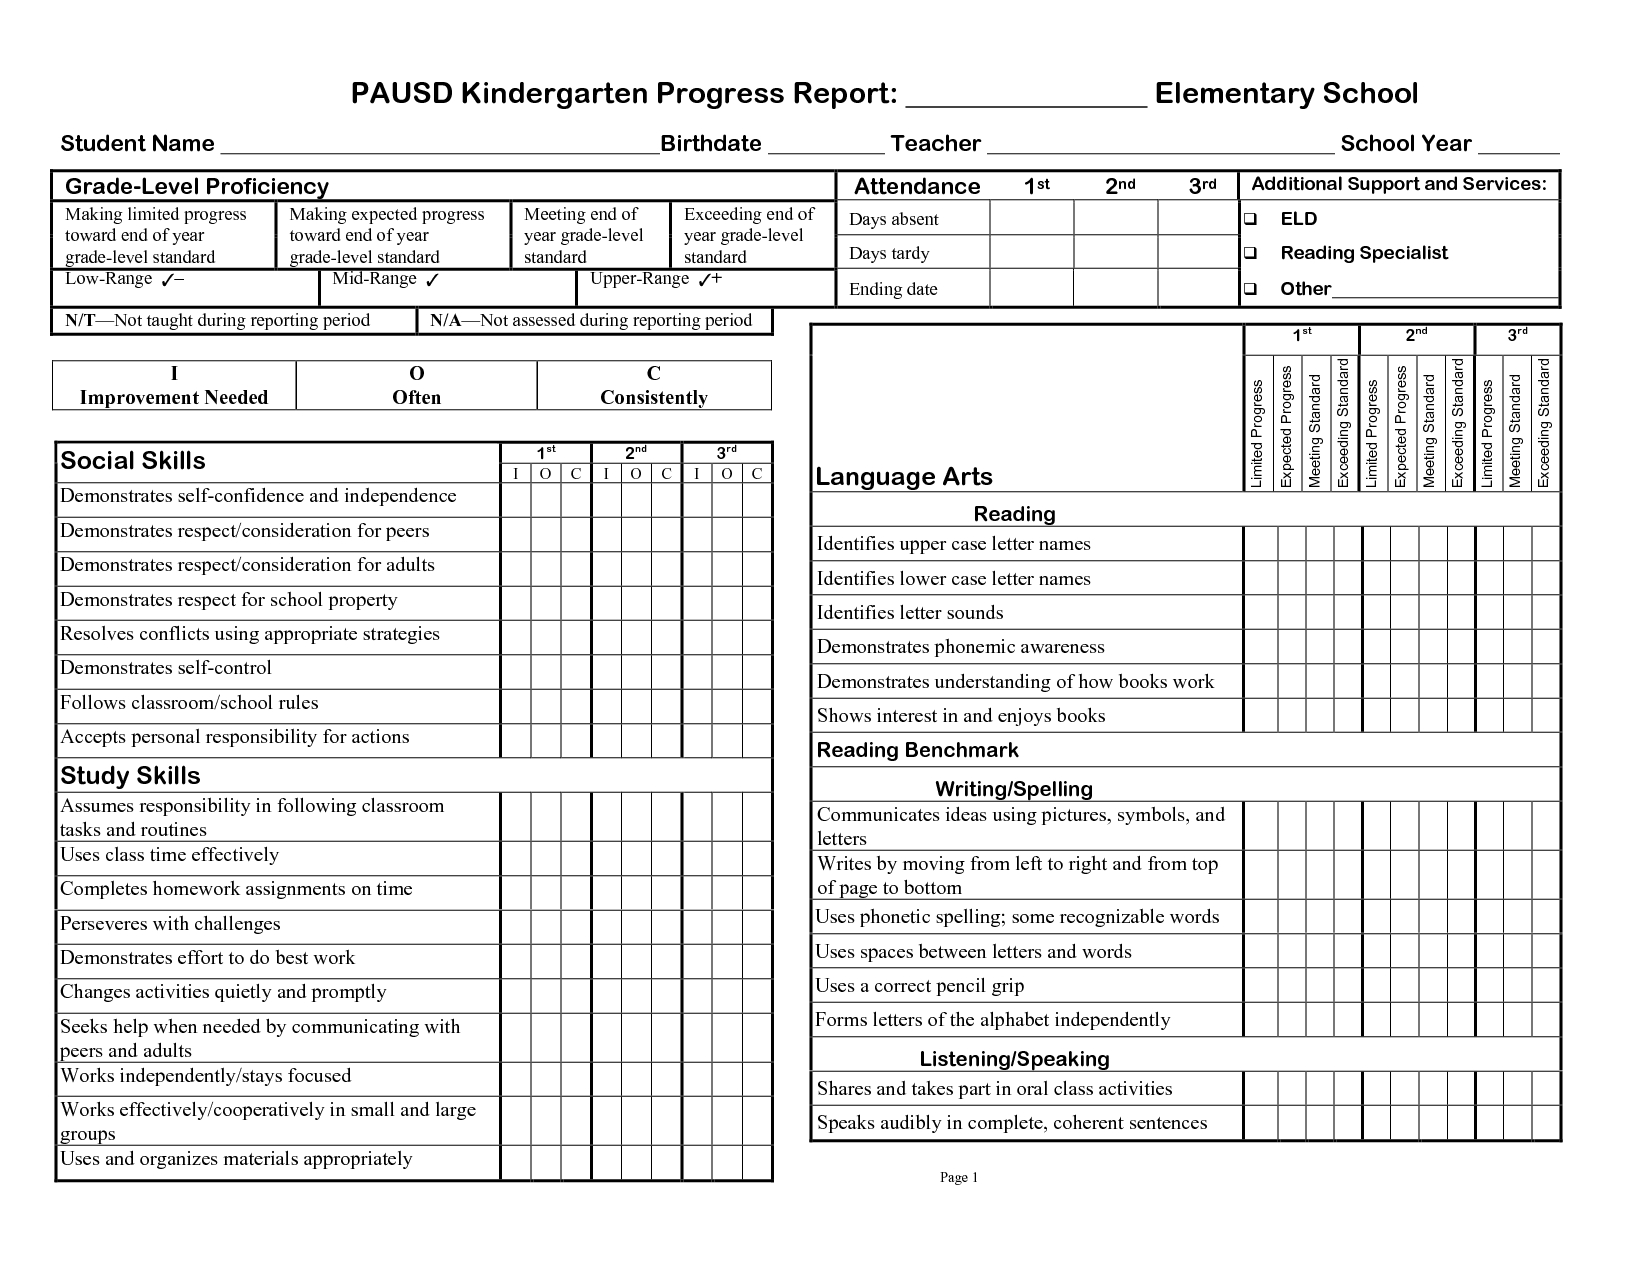 Kindergarten Social Skills Progress Report Blank Templates For High School Progress Report Template